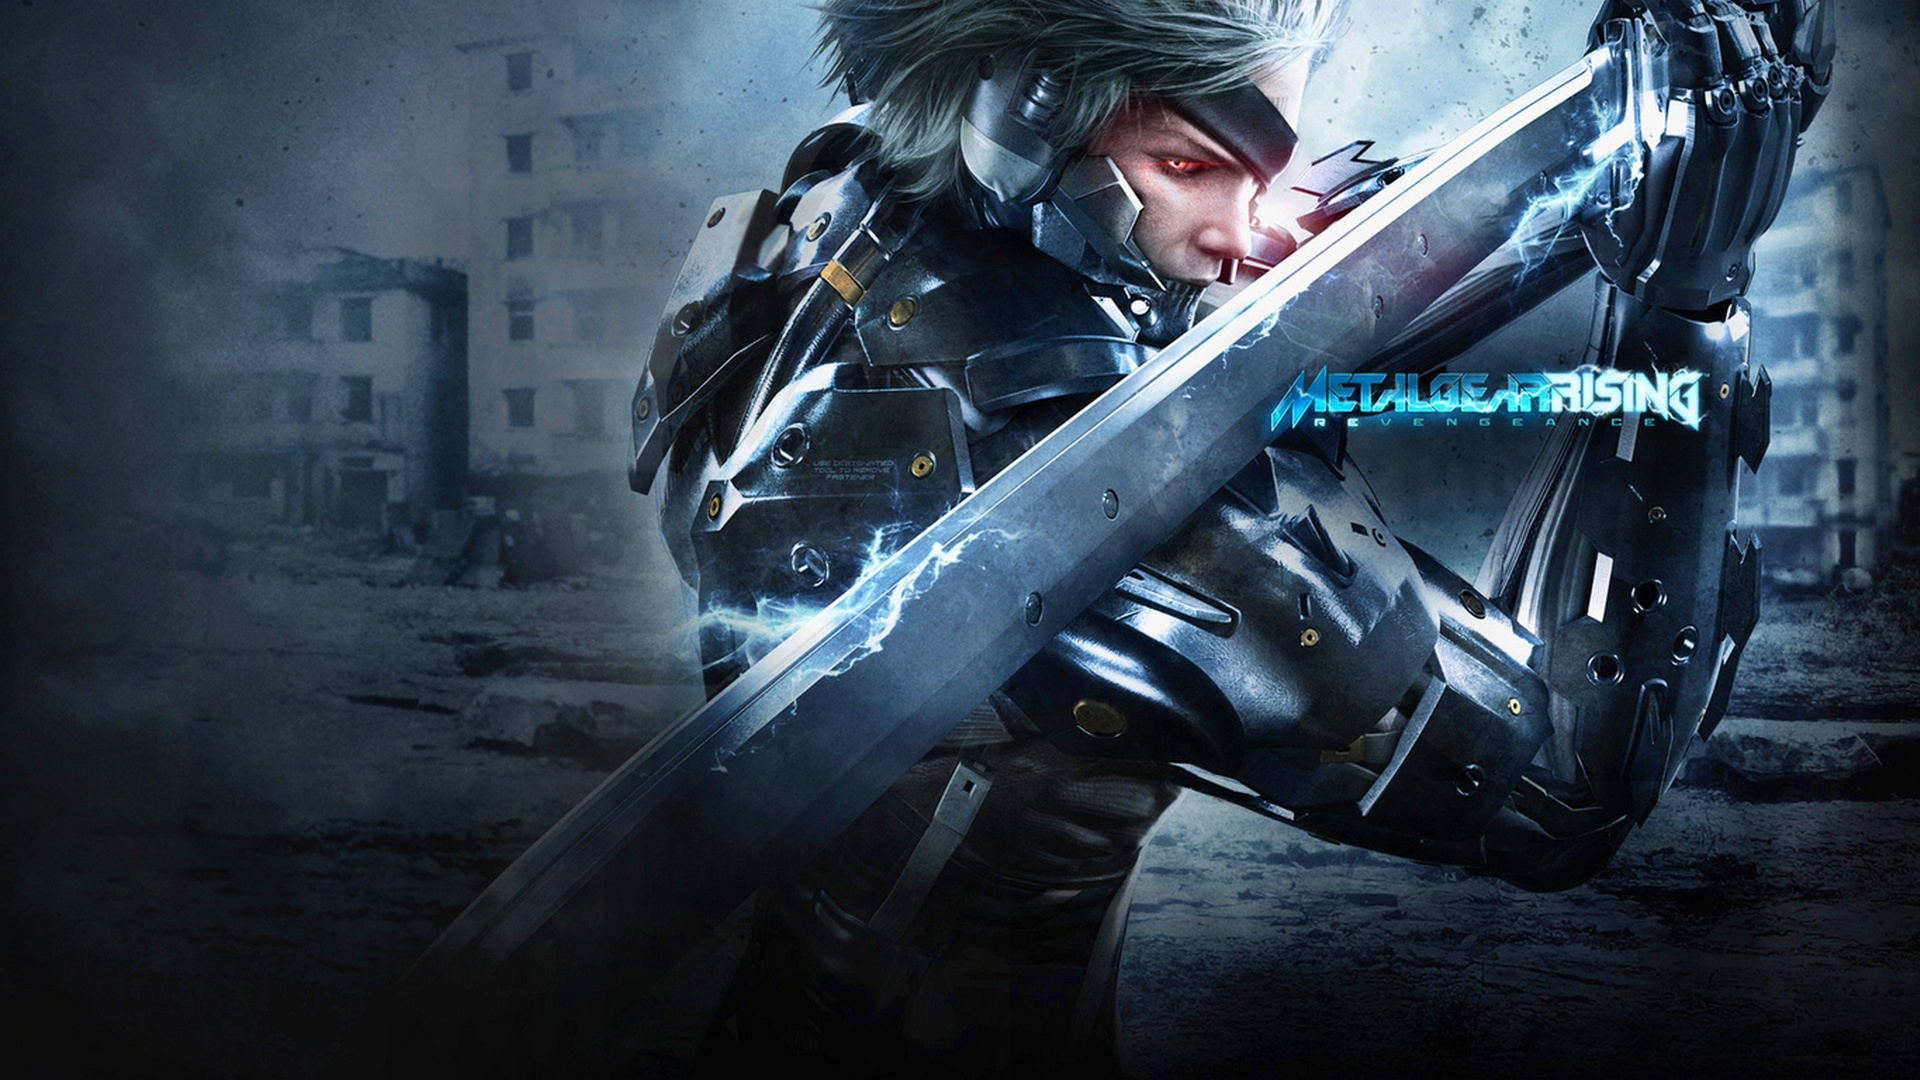 40 Amazing Video Game Wallpapers in HD